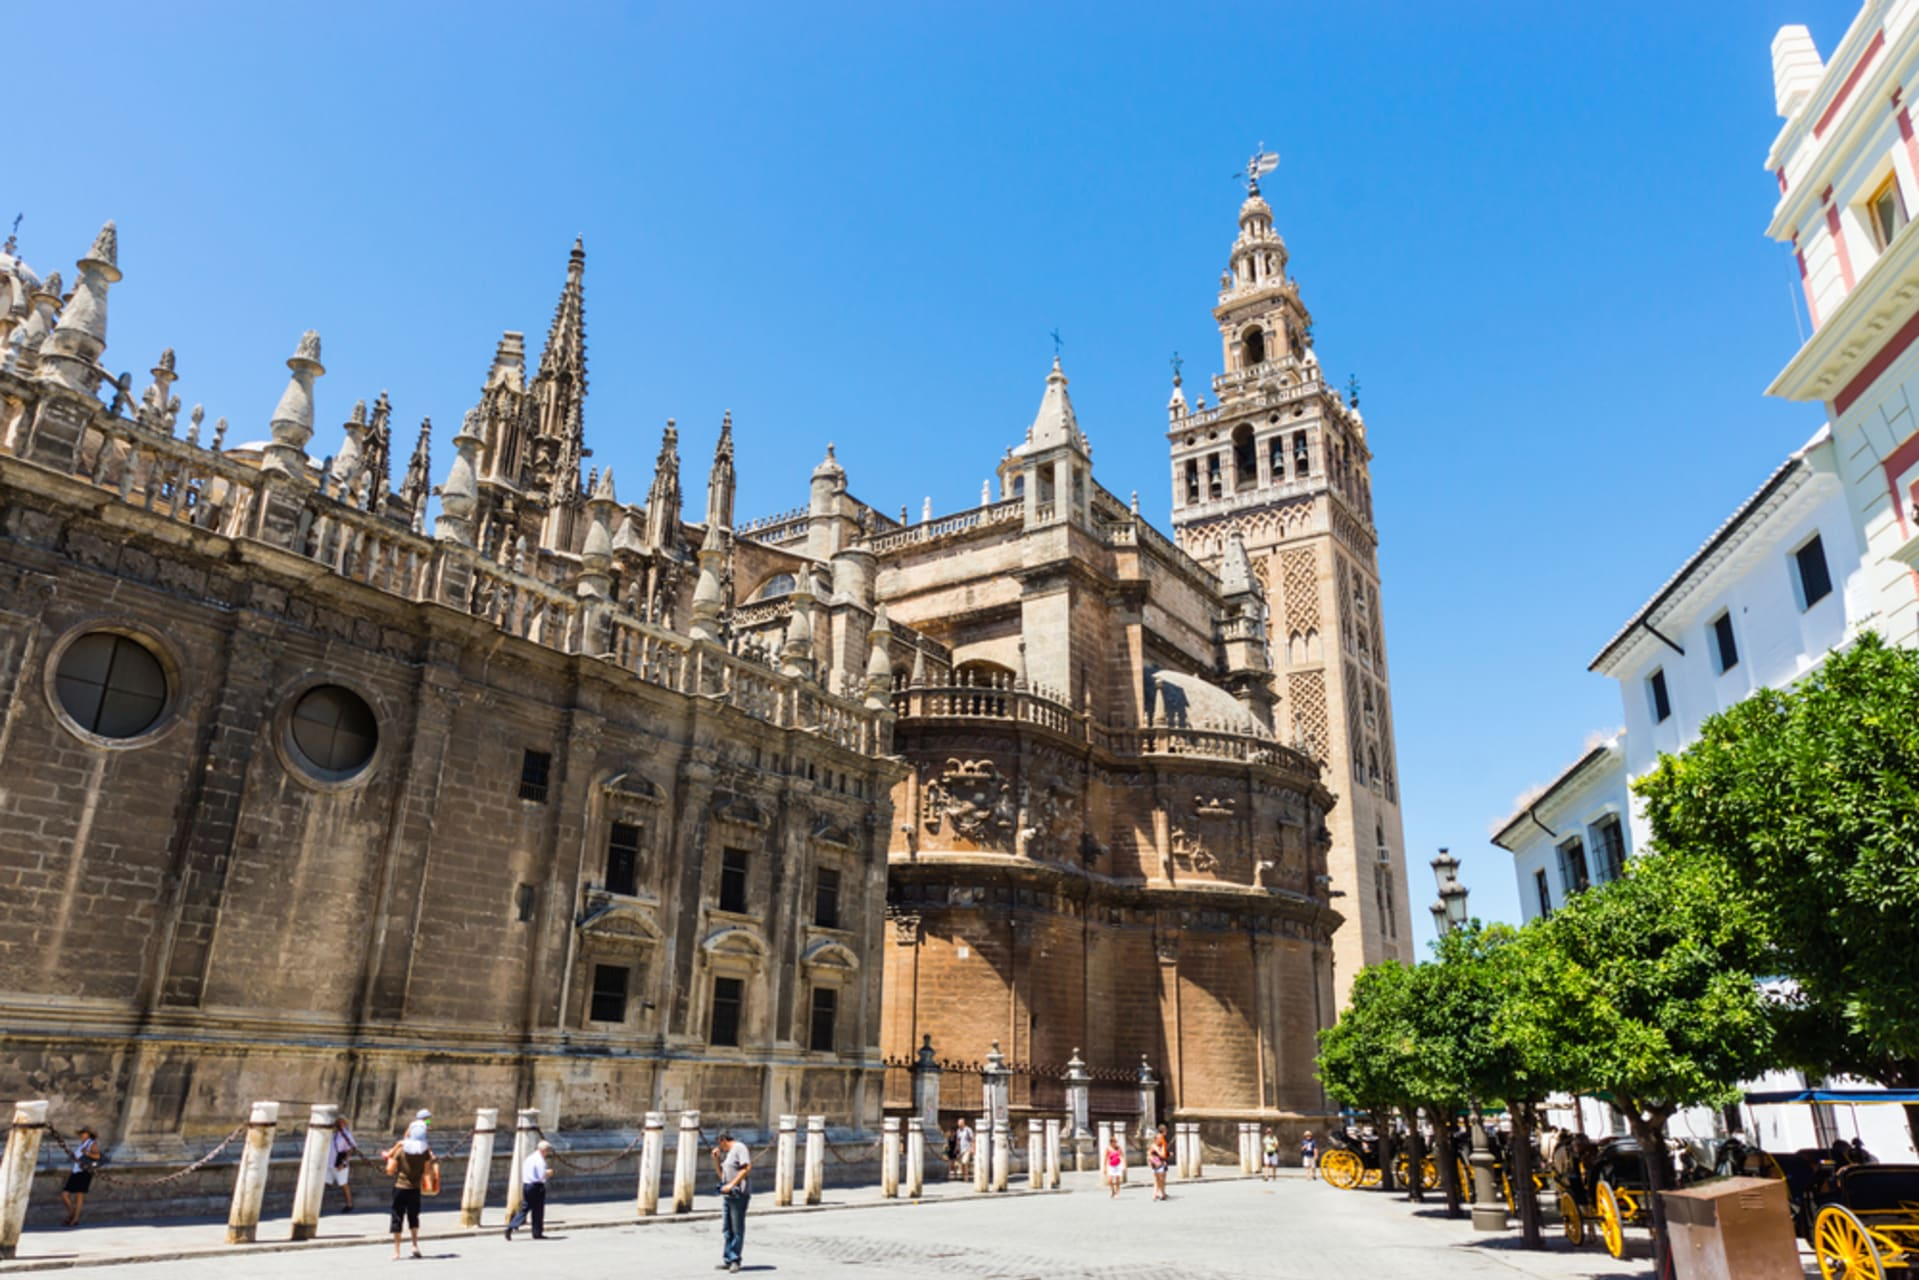 Seville - Monumental Seville: The Cathedral and its Surroundings